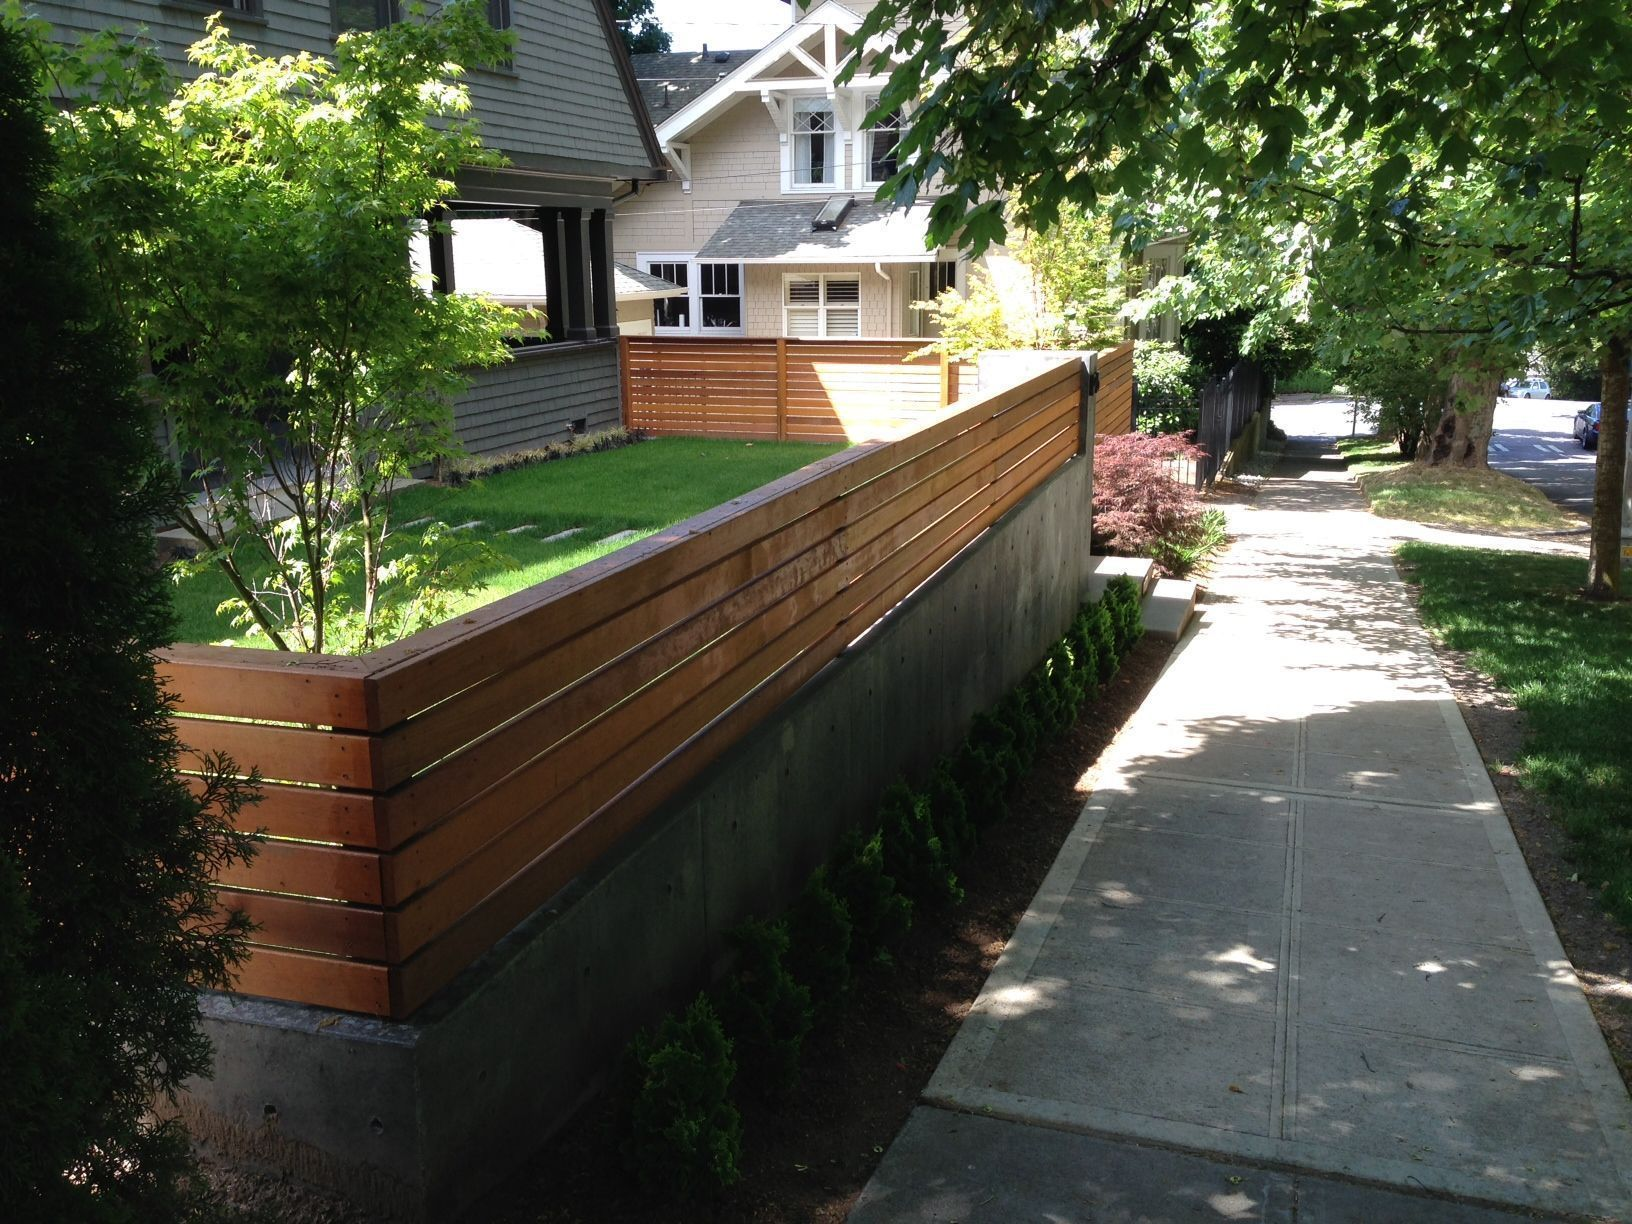 35 Inspiring Retaining Wall Ideas Uses That Will Blow Your Mind Fence Design Concrete Retaining Walls Front Yard Fence